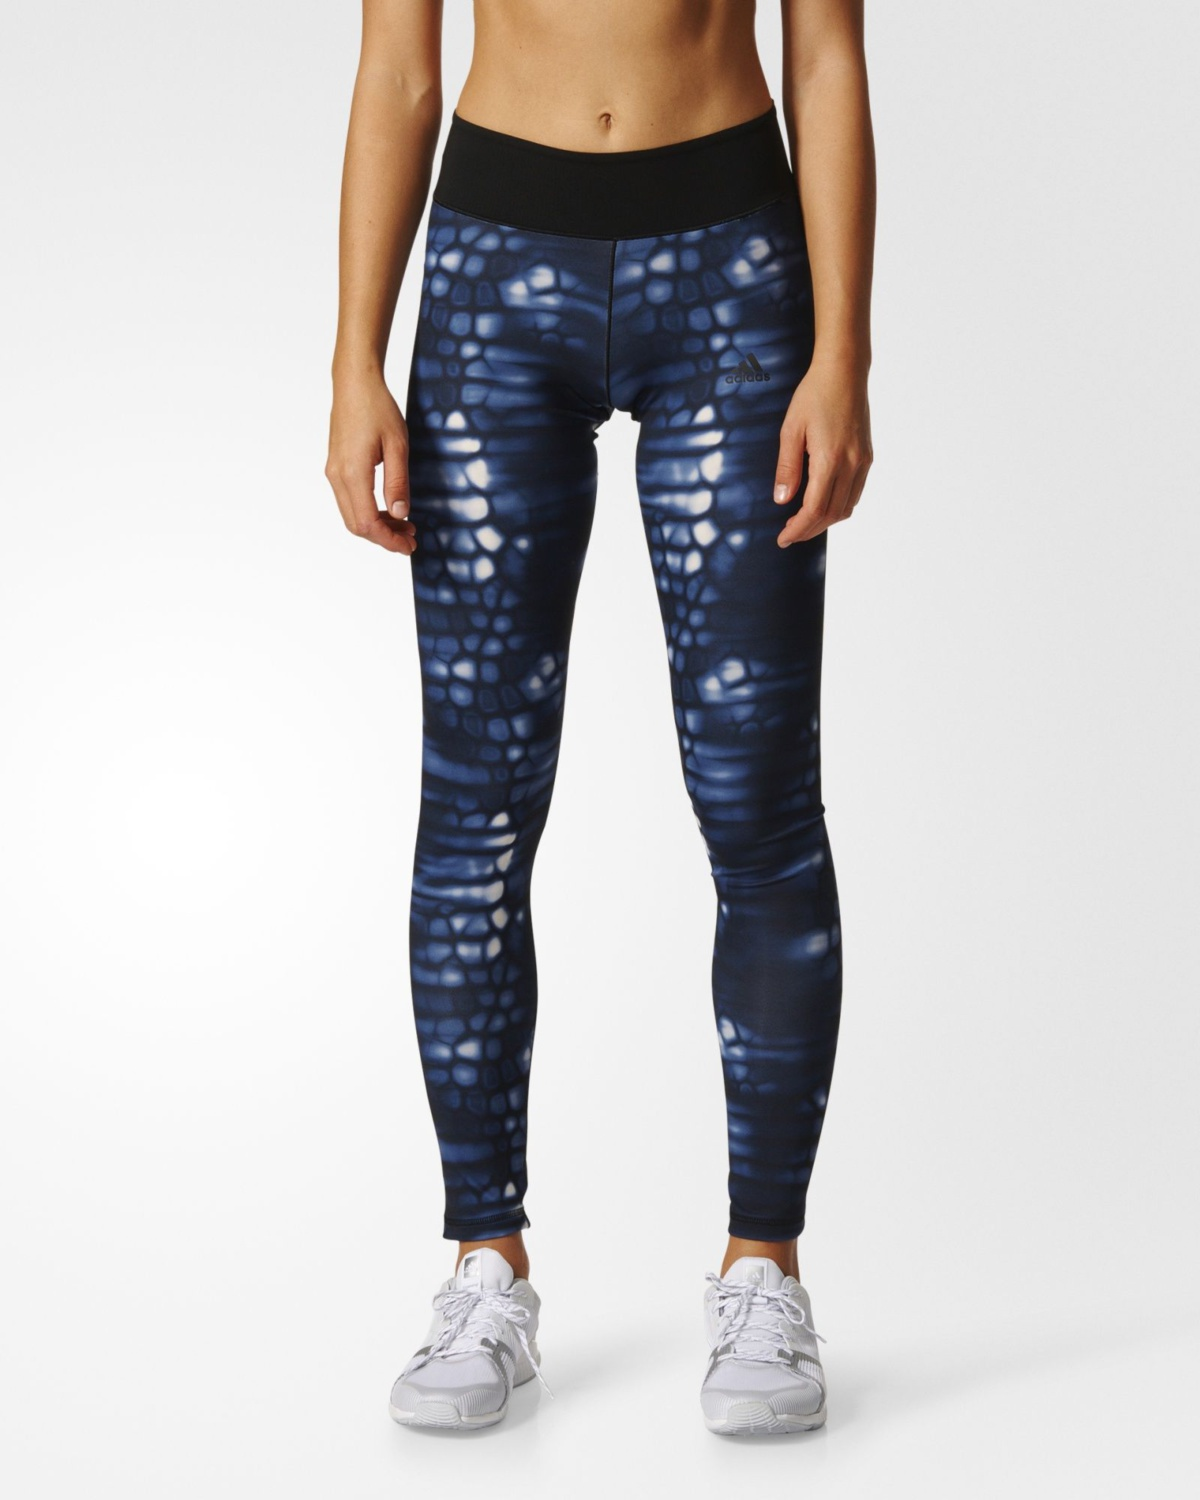 Adidas Ultimate Allover Print Ladies Tights | Start Fitness